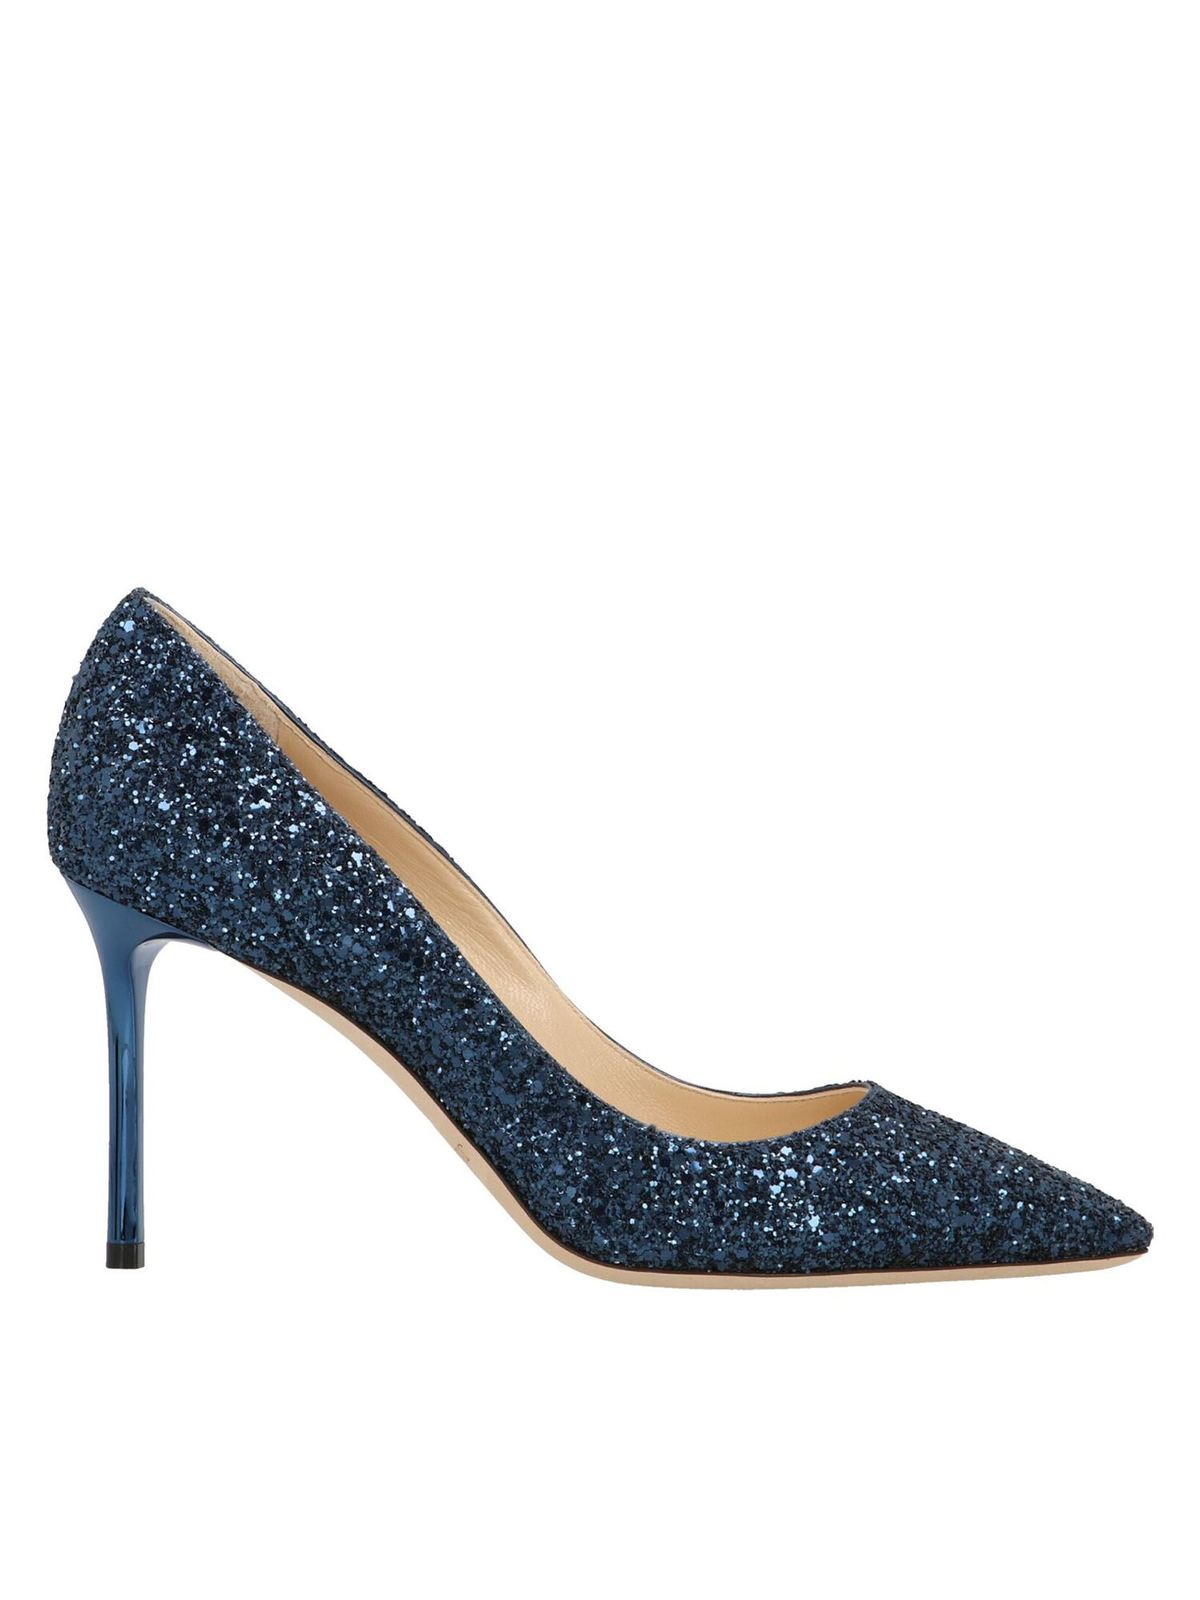 Jimmy Choo Laces ROMY 85 PUMPS IN BLUE